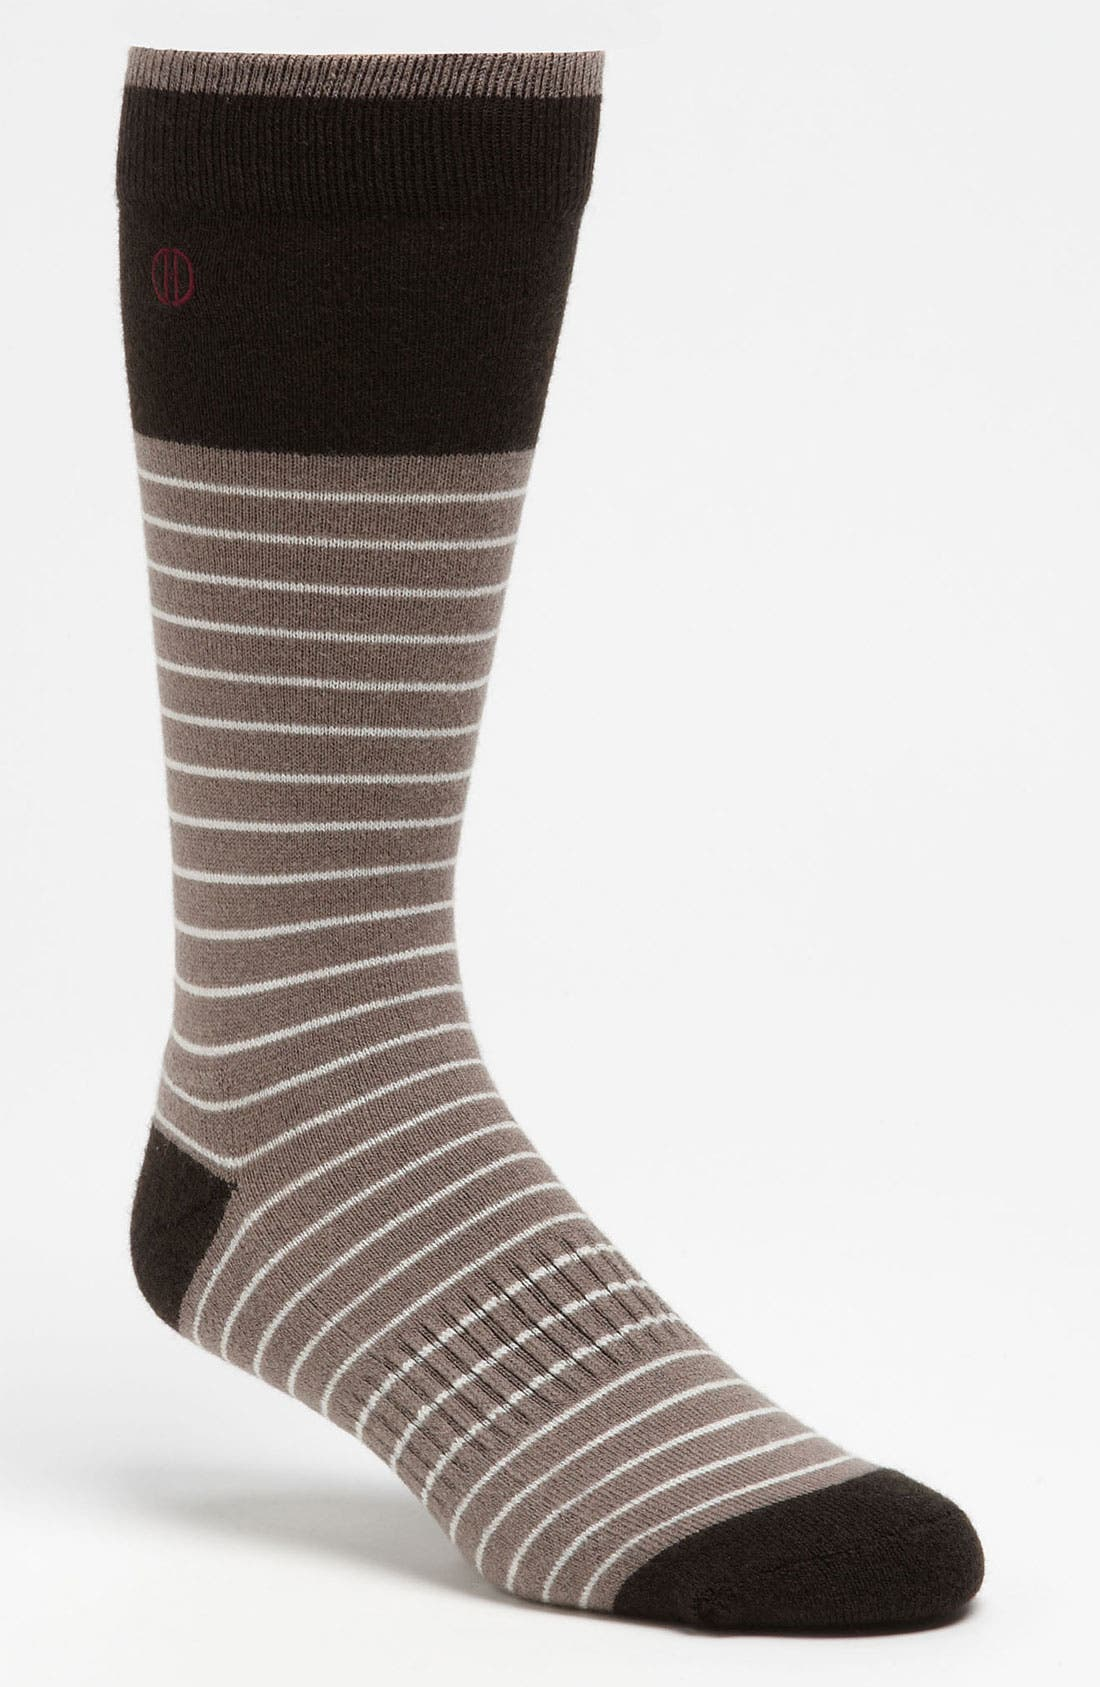 Main Image - David Donahue Wool Blend Socks